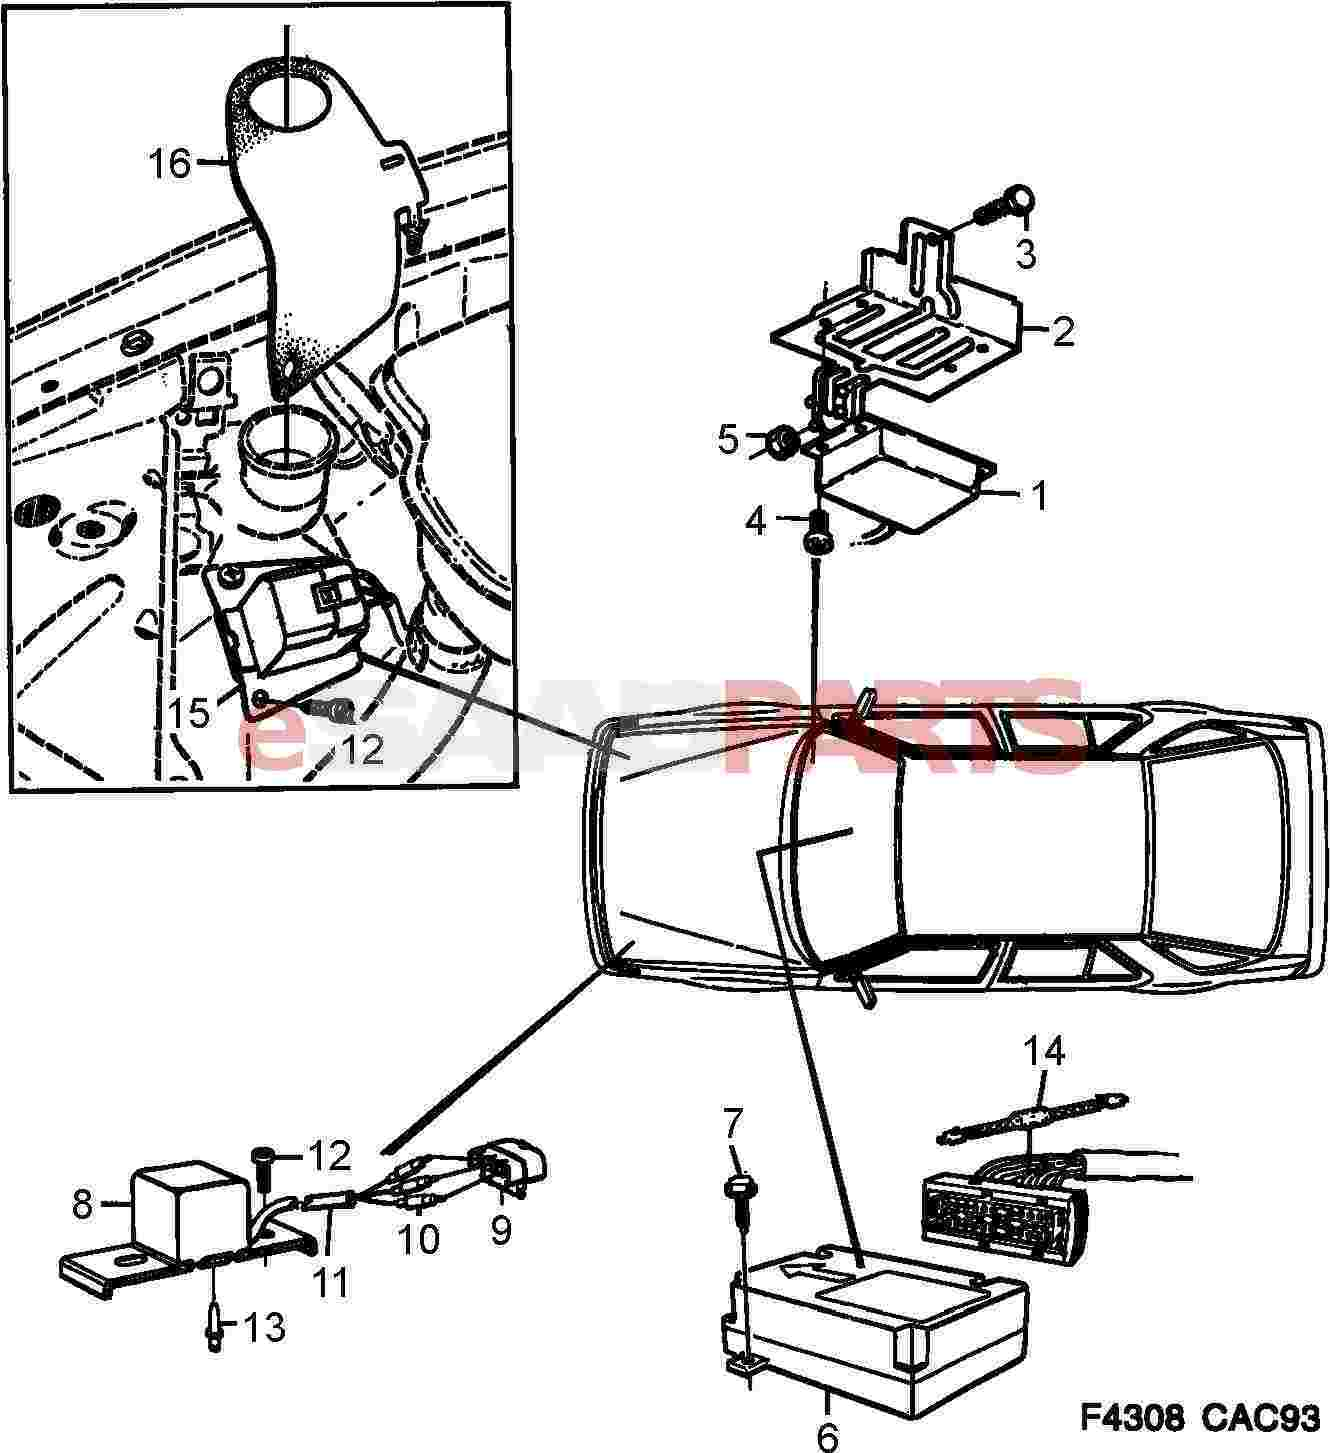 19015?resize\\\=665%2C727\\\&ssl\\\=1 saab 9 7x fuse box wiring diagram weick military fuse blocks at crackthecode.co